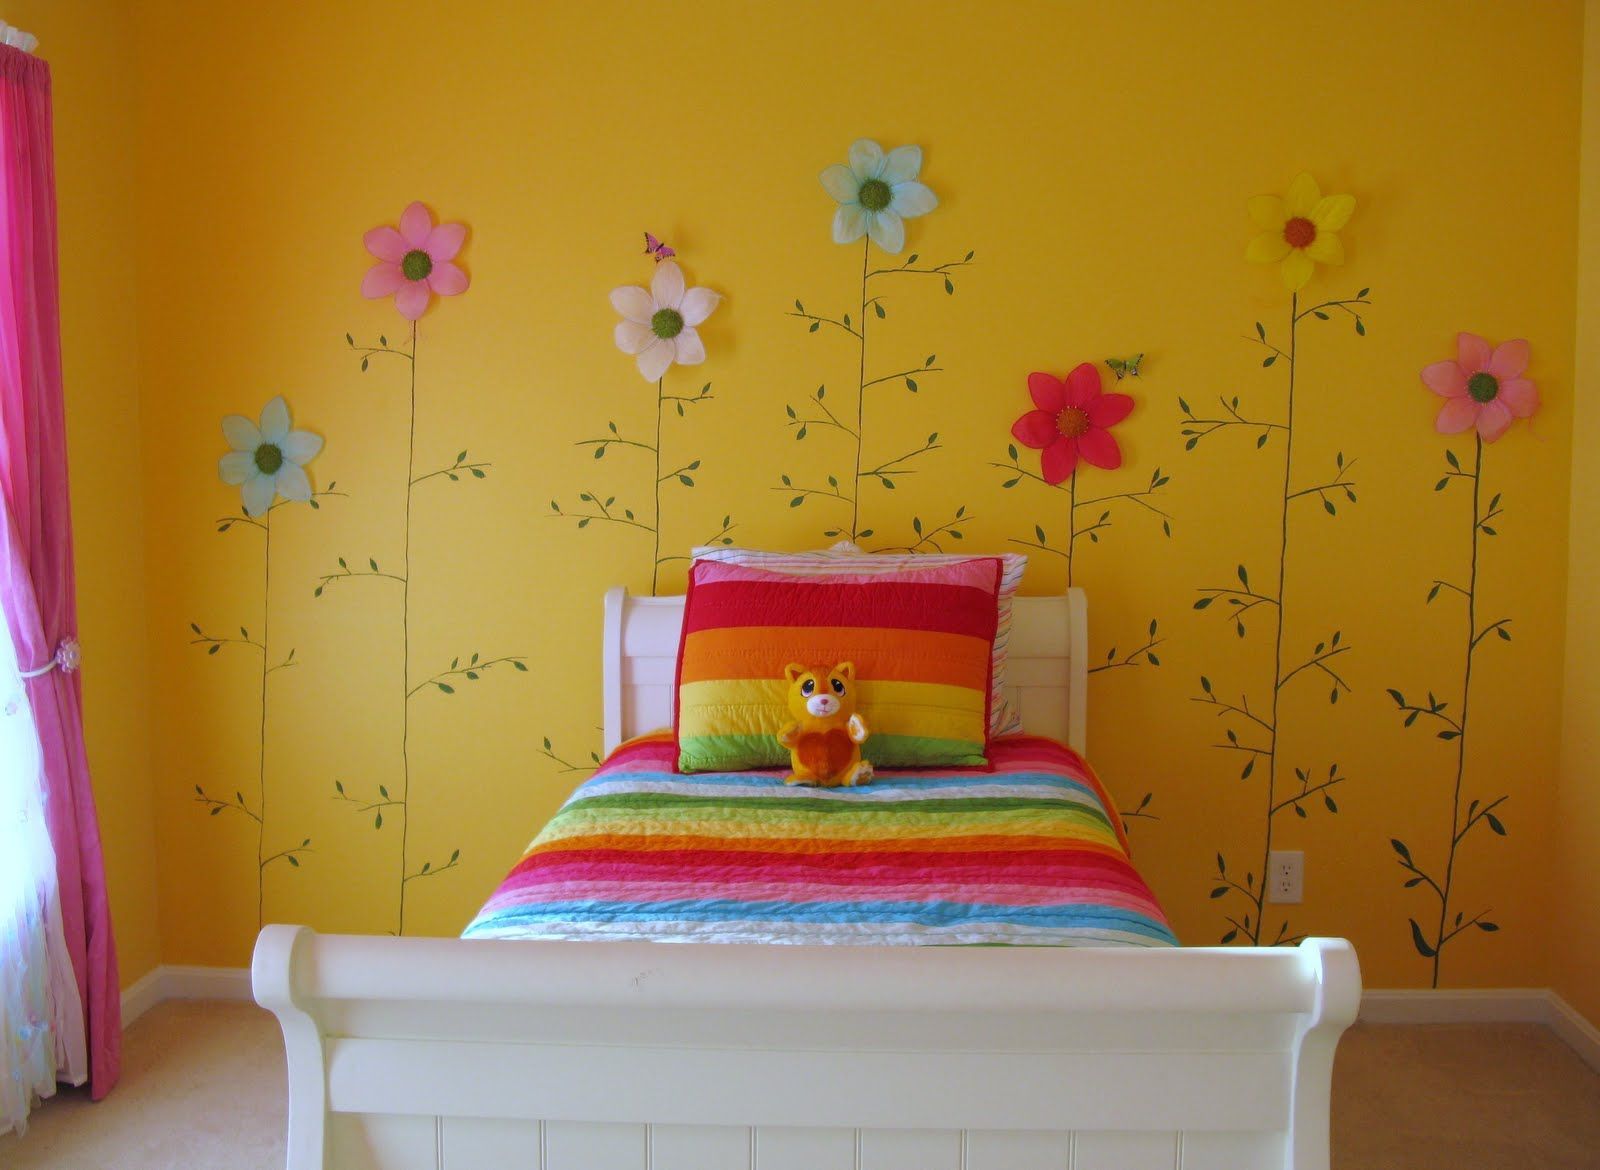 Bedroom colors yellow - 5 Stylish Bedroom Designs For Your Comfort